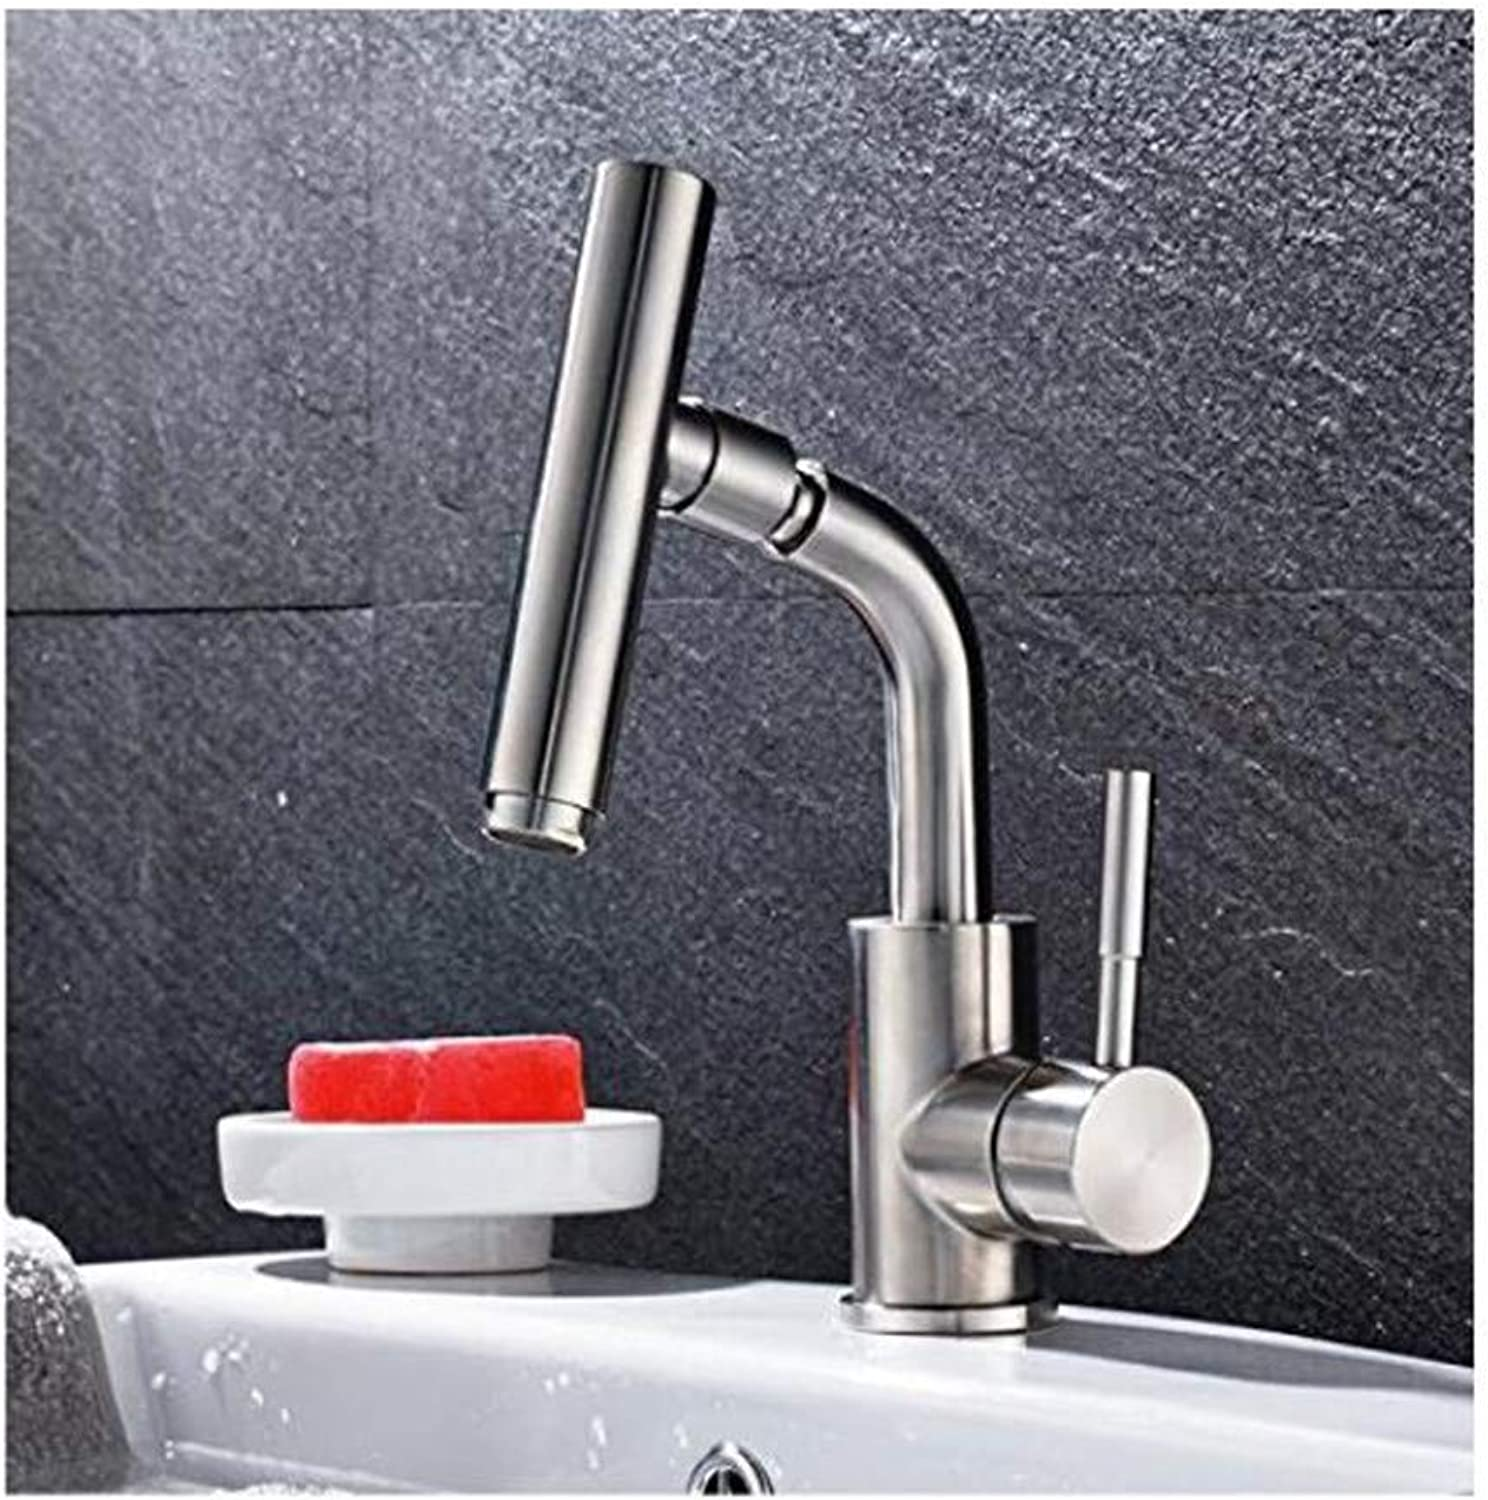 Faucet Kitchen Bathroom Retro Mixer Faucet Nickel Brushed Stainless Steel 360 Degree redating Spout Bathroom Sink Faucet Single Handle Mixer Tap Deck Mounted